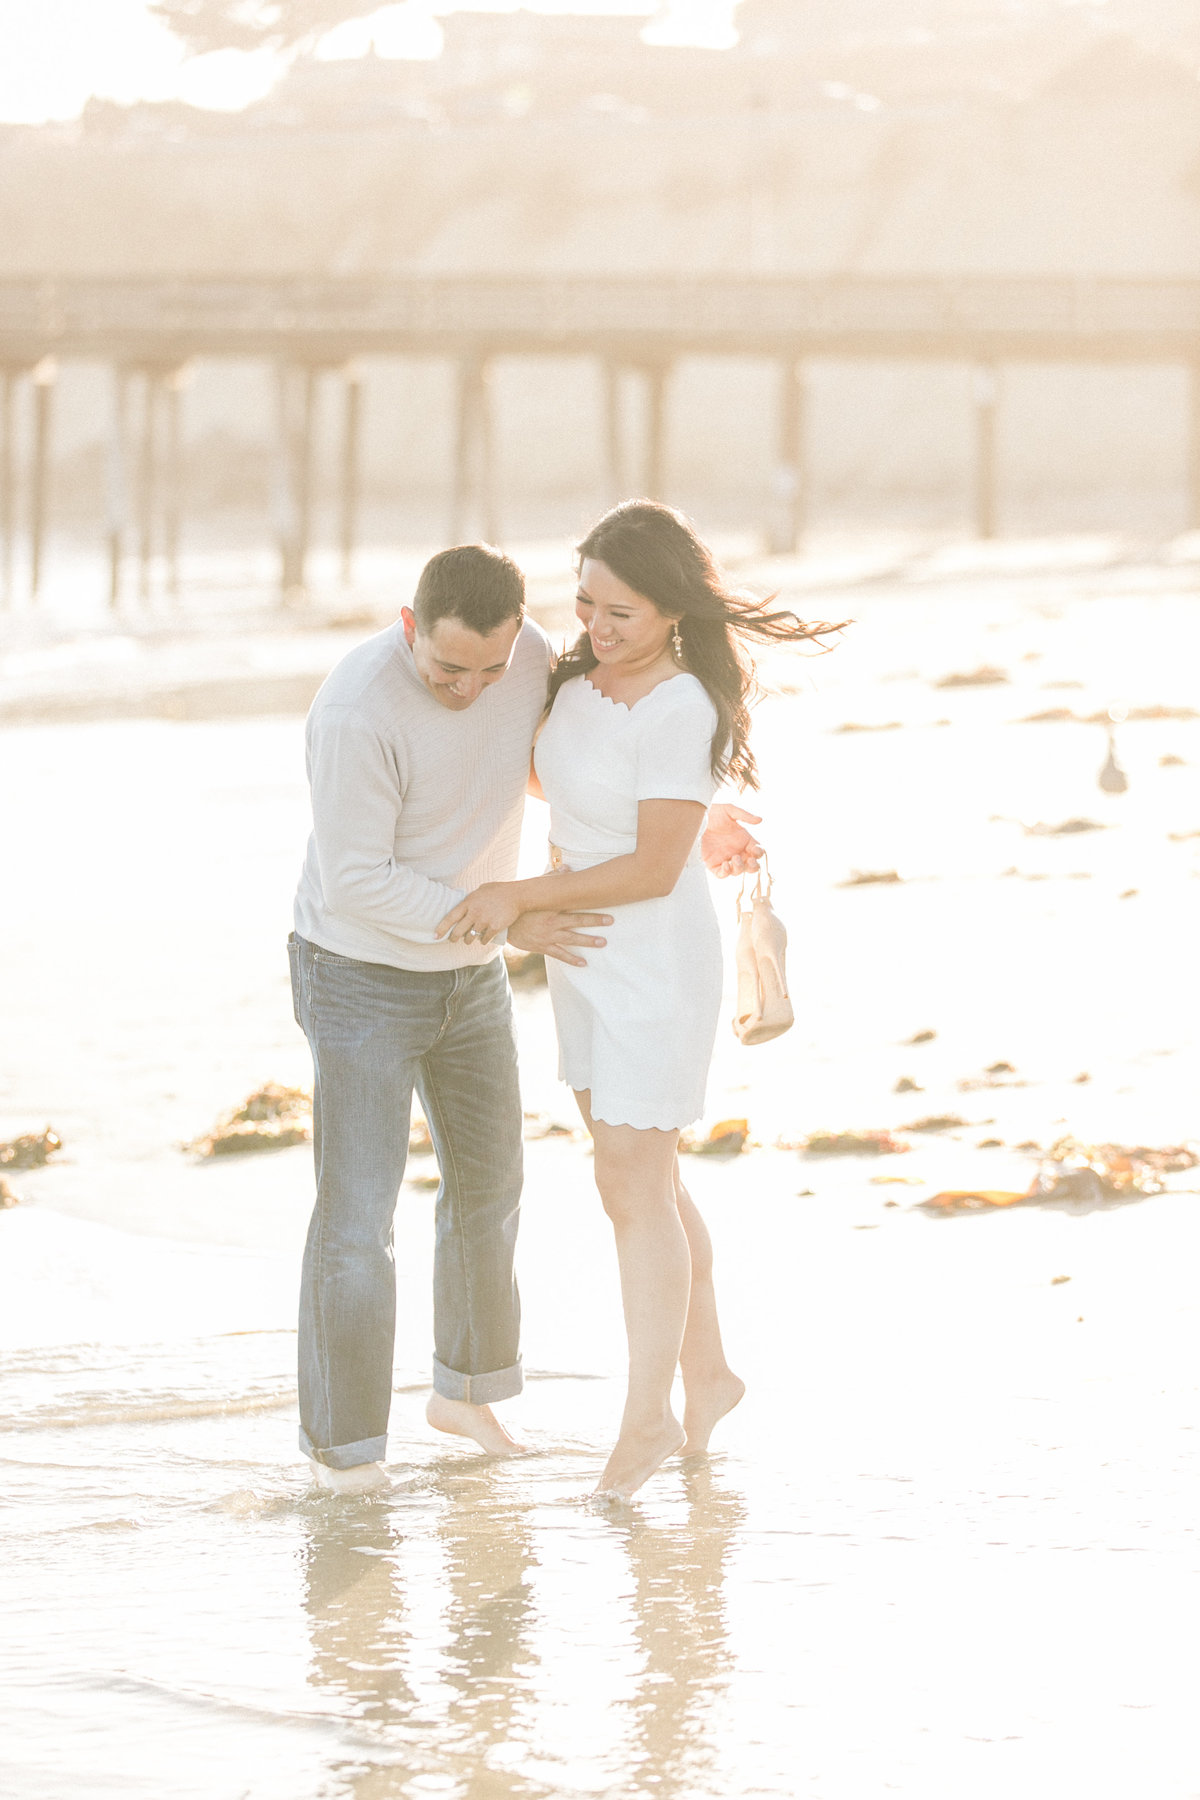 Candid Romantic Beach Engagement Photos